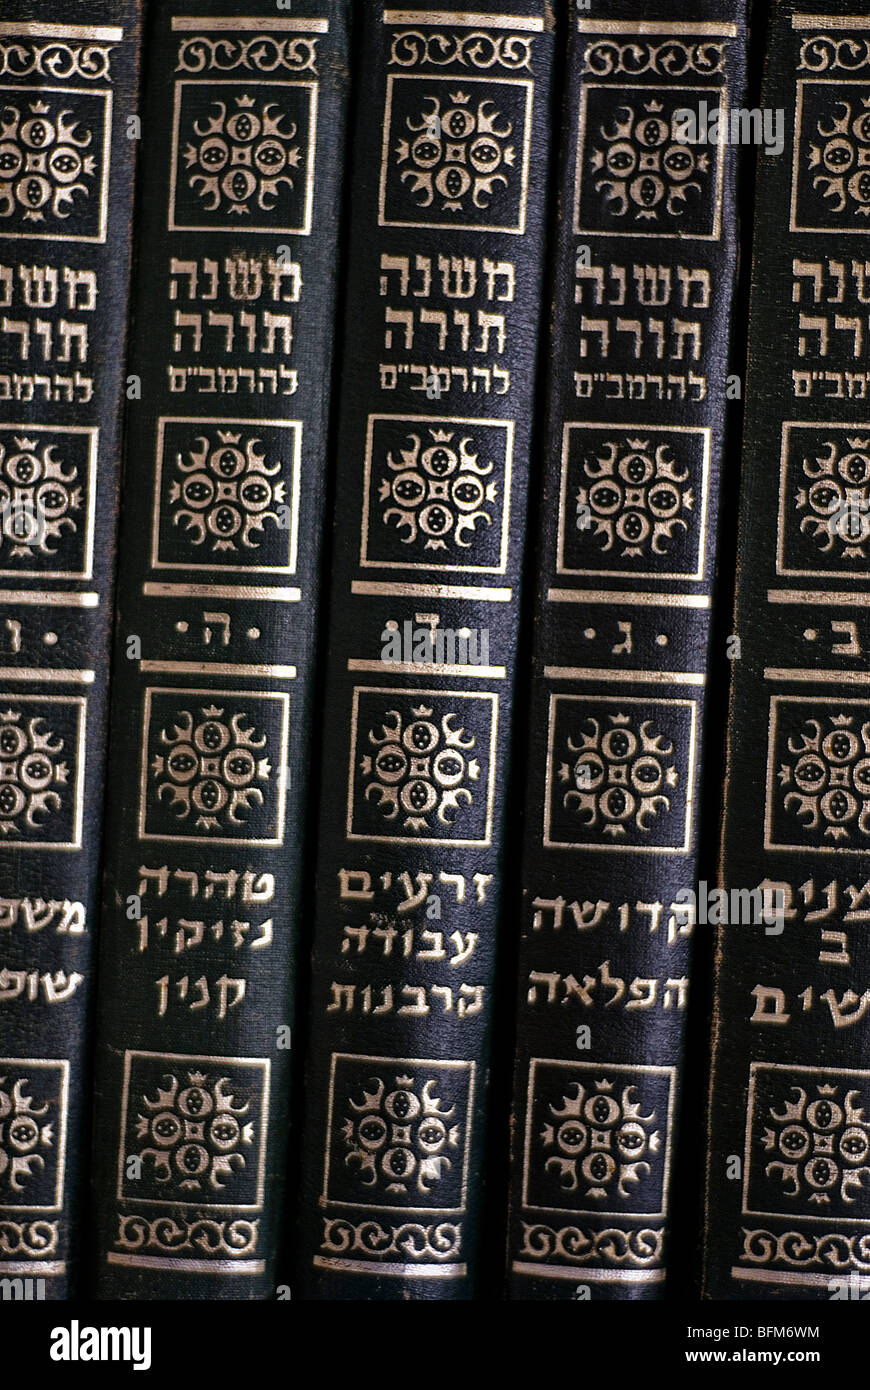 The Mishneh Torah (Repetition of the Torah) authored by Maimonides - Stock Image